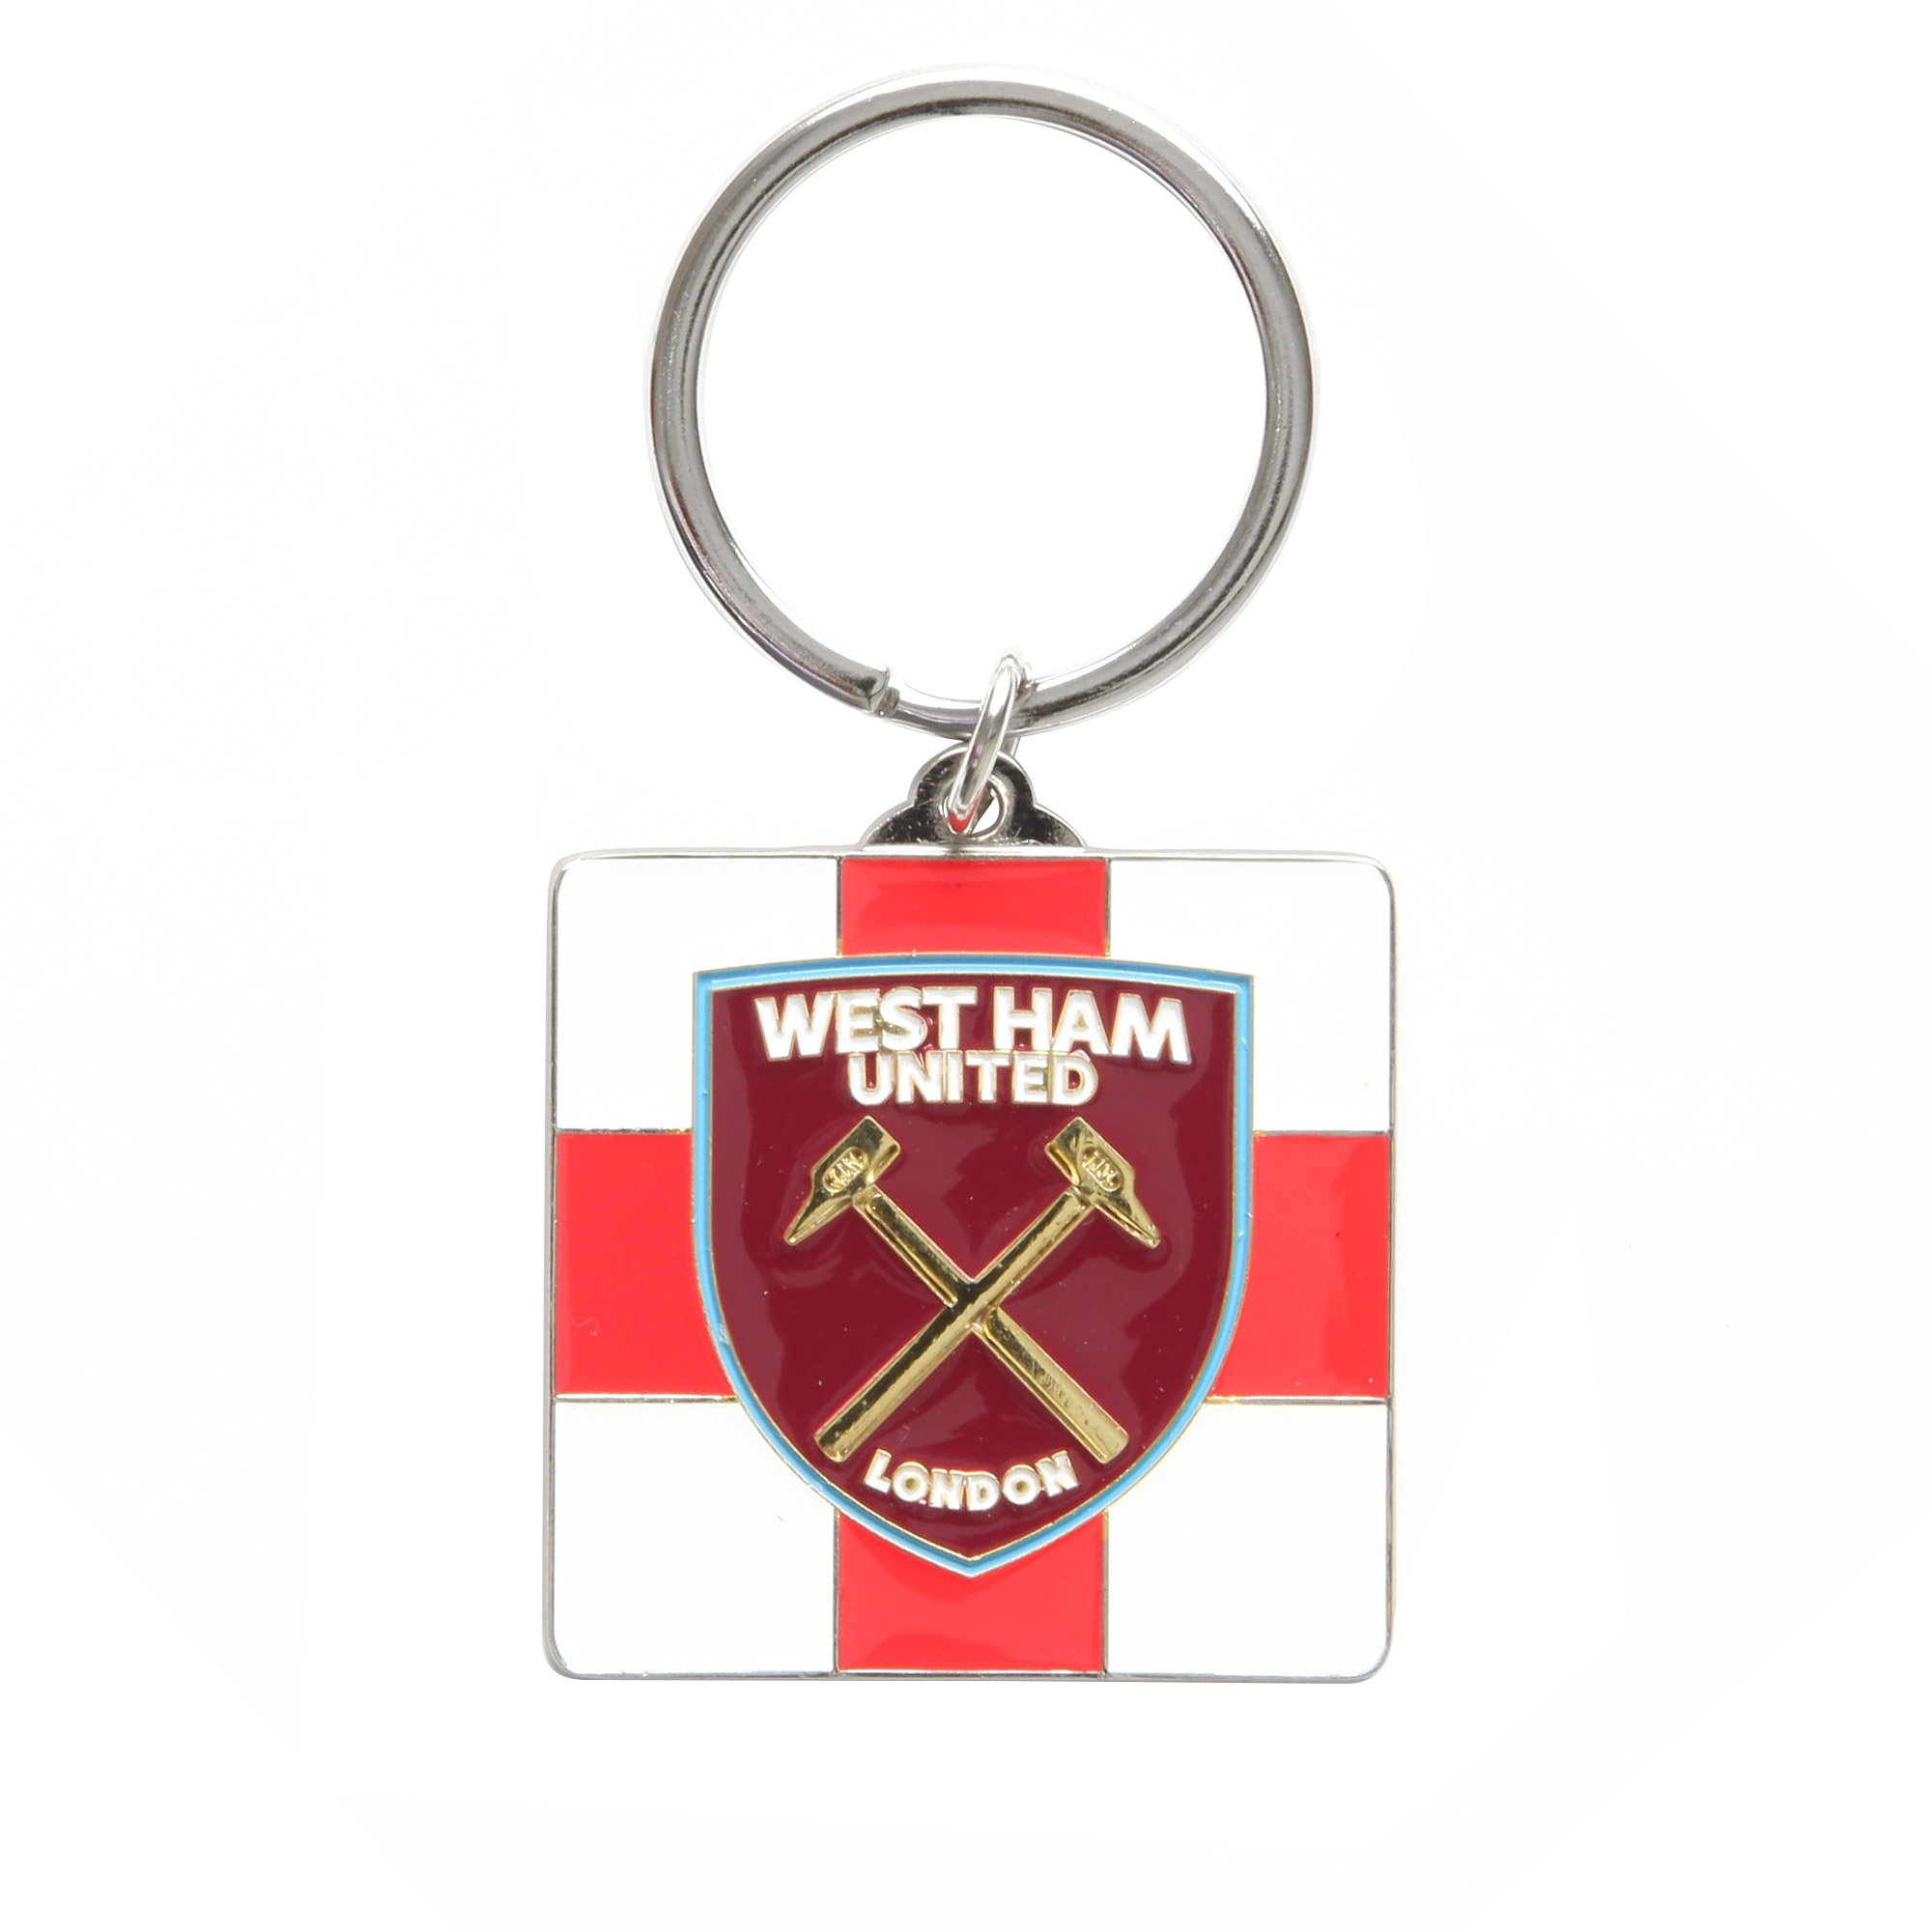 CLUB & COUNTRY KEYRING